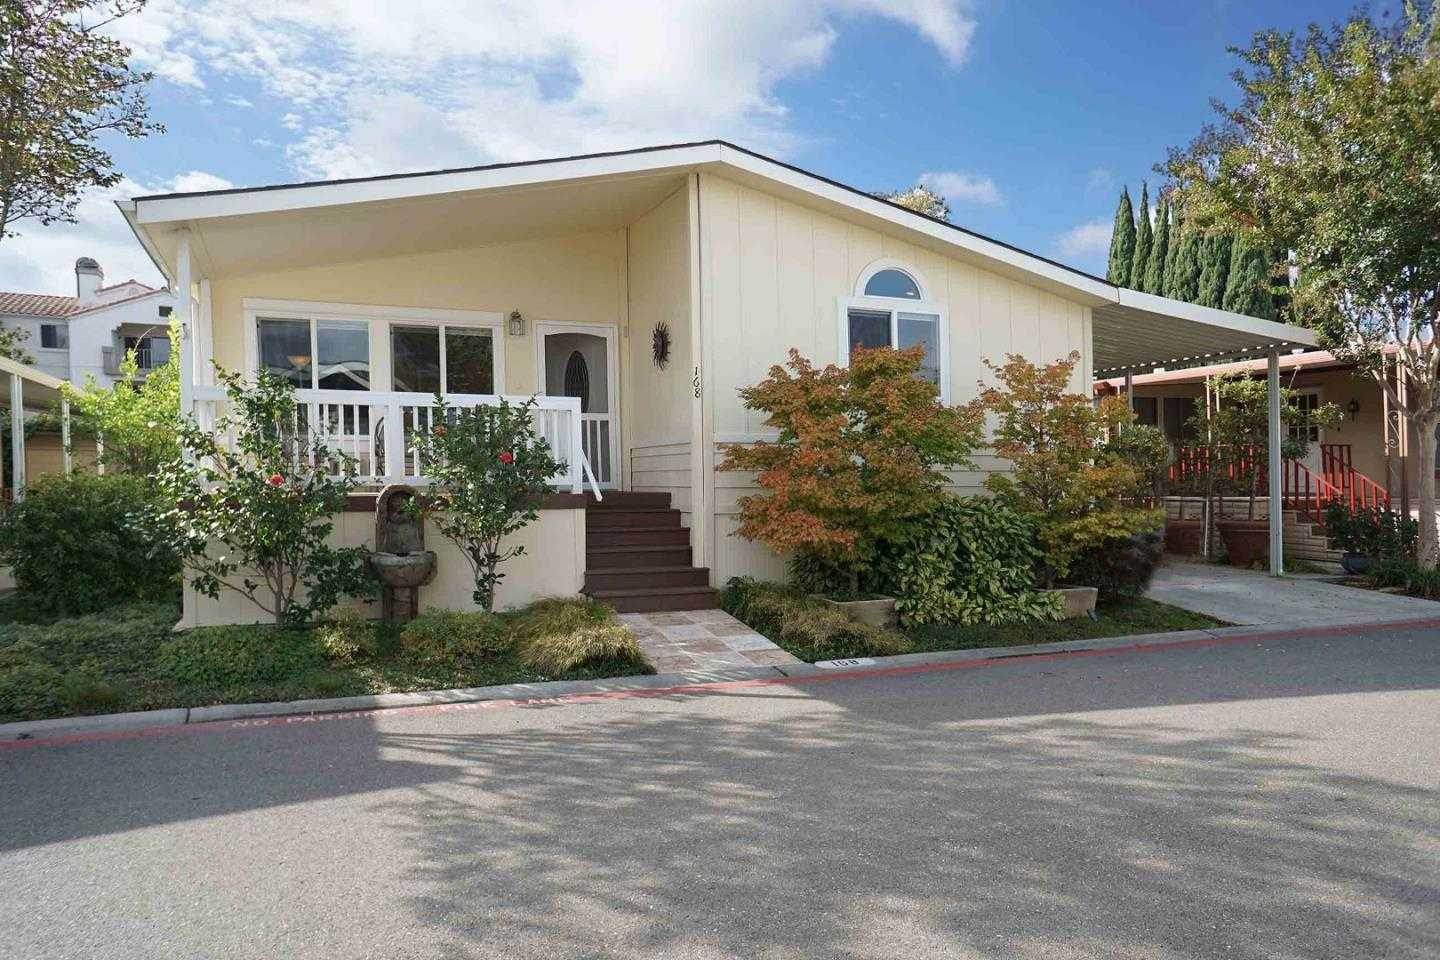 $315,000 - 3Br/2Ba -  for Sale in Sunnyvale